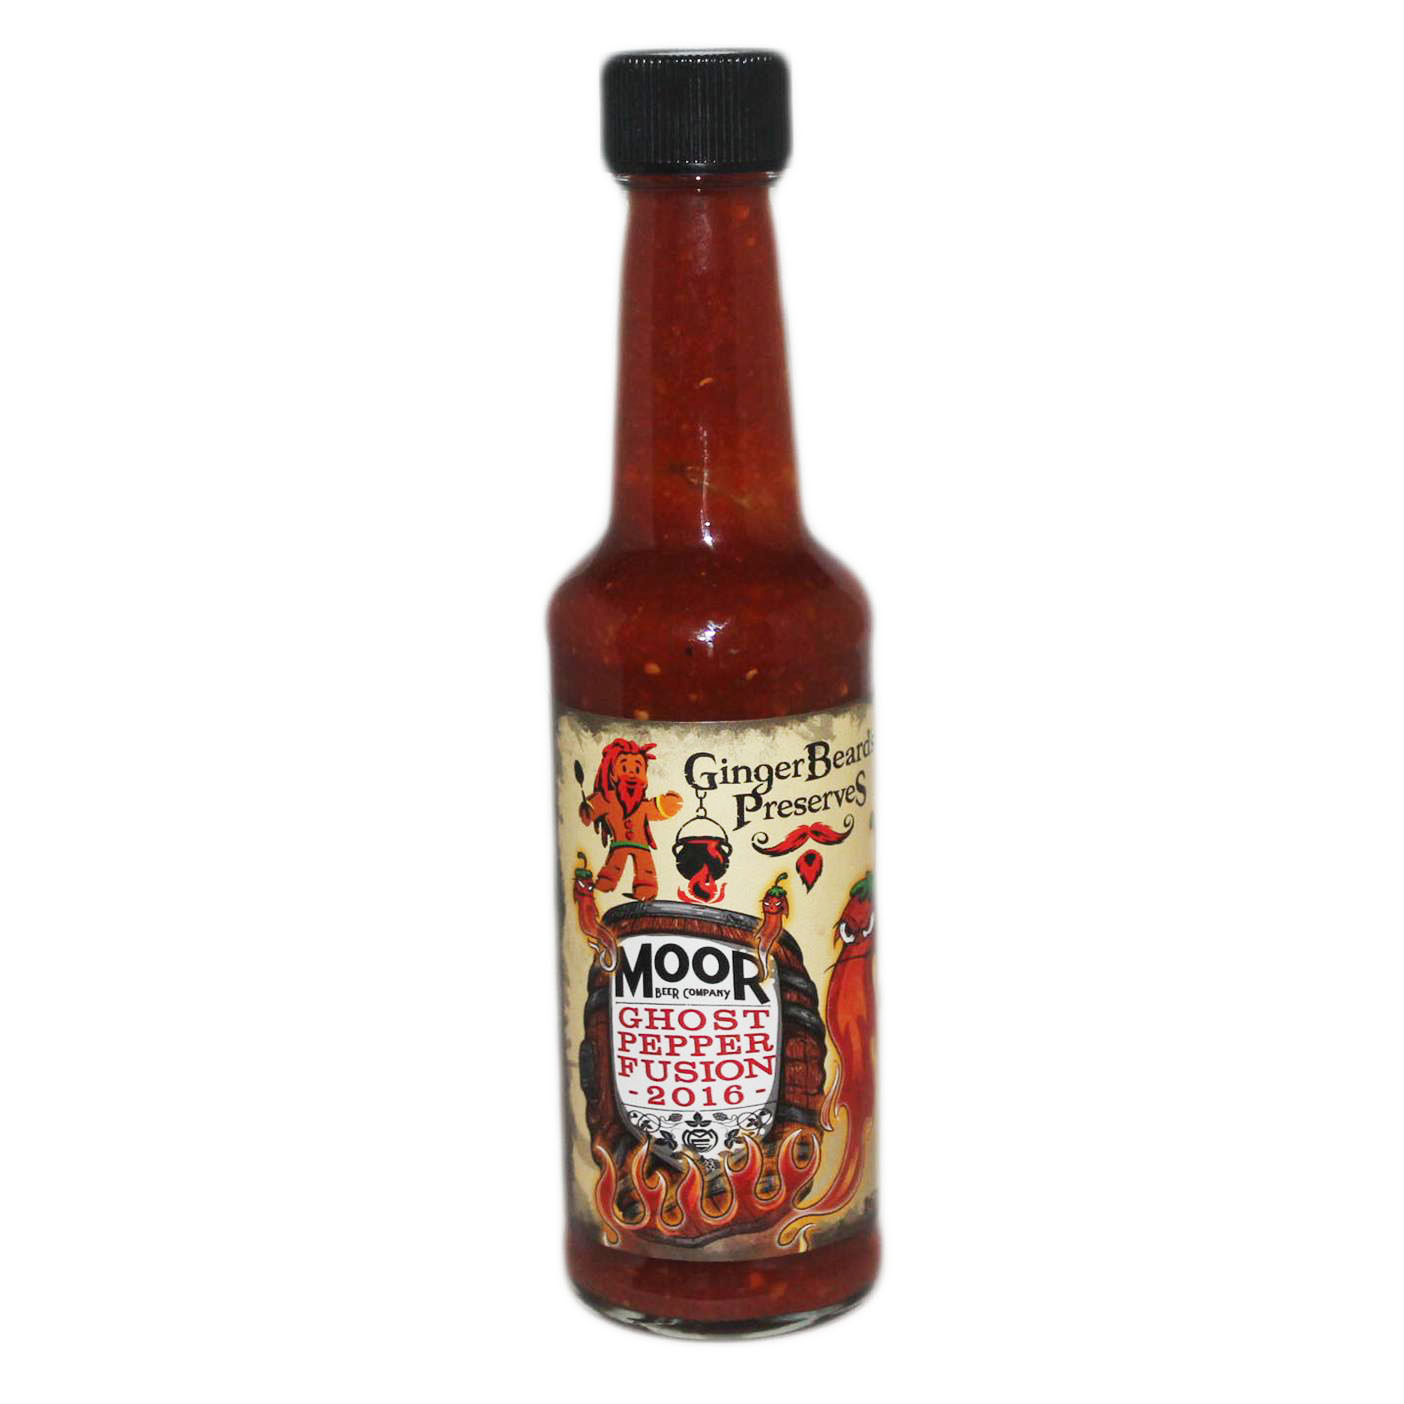 Moor Ghost Pepper Fusion Hot Sauce